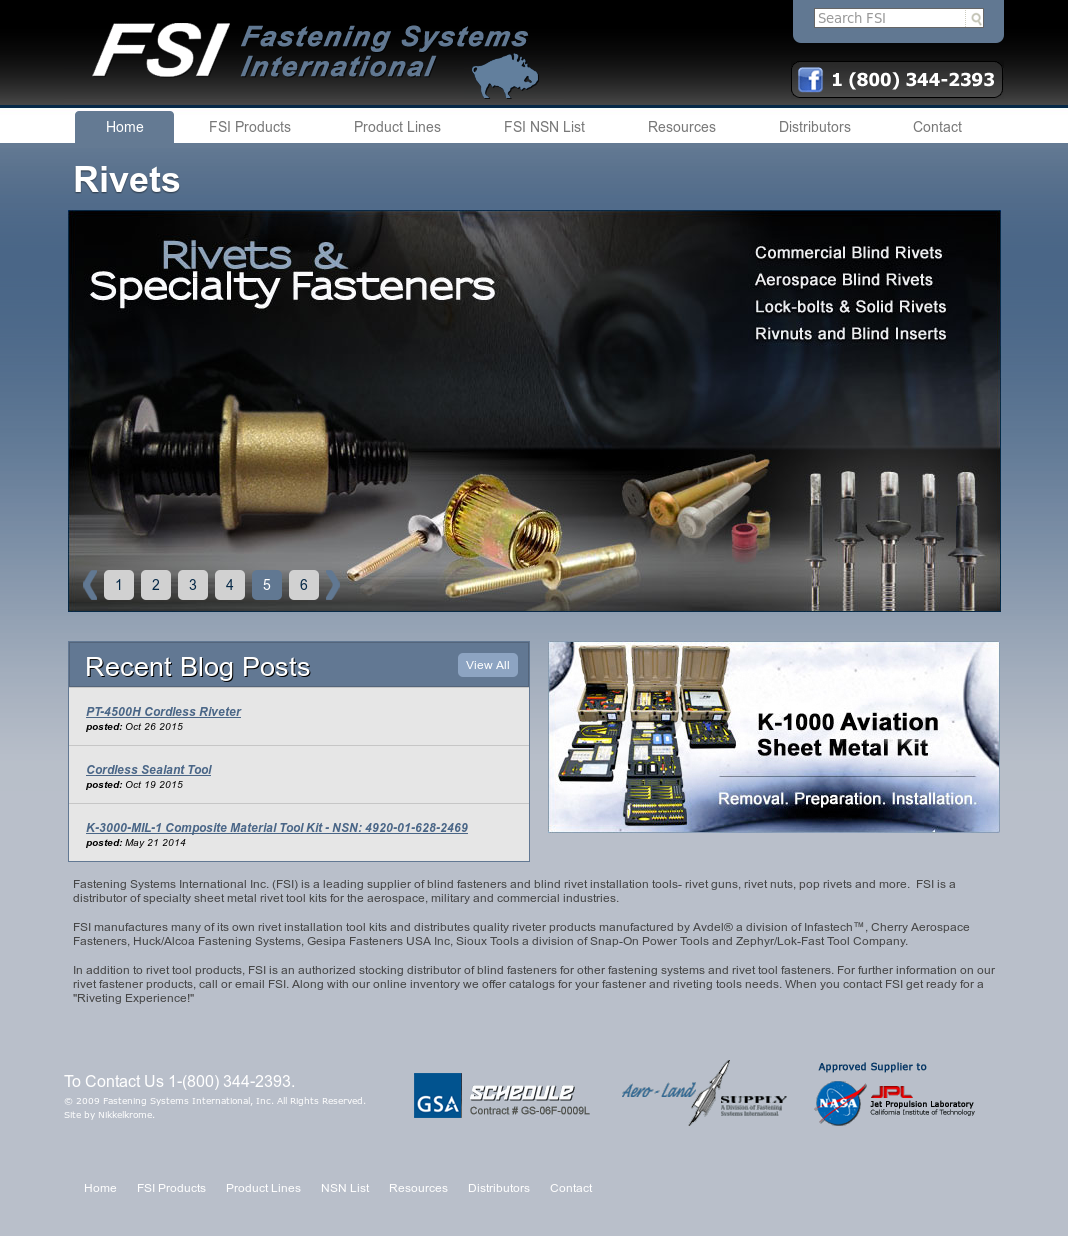 Fastening Systems International Competitors, Revenue and Employees